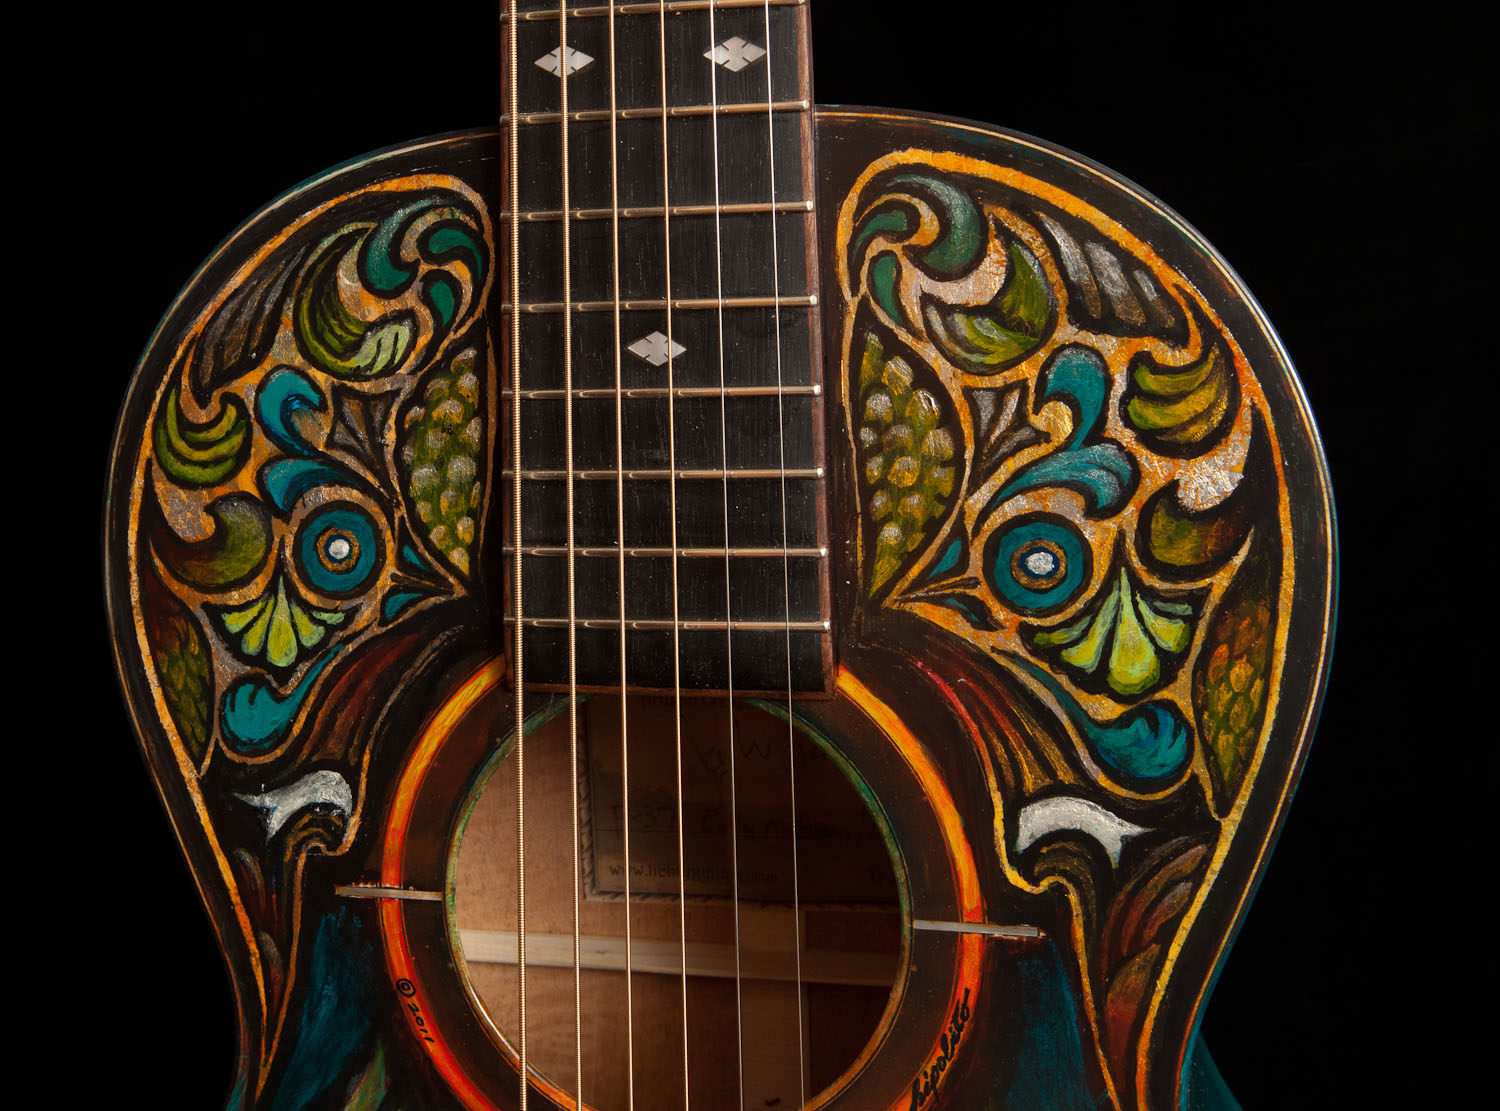 Lichty Handcrafted Parlor Guitar, artwork by Clark Hipolito-